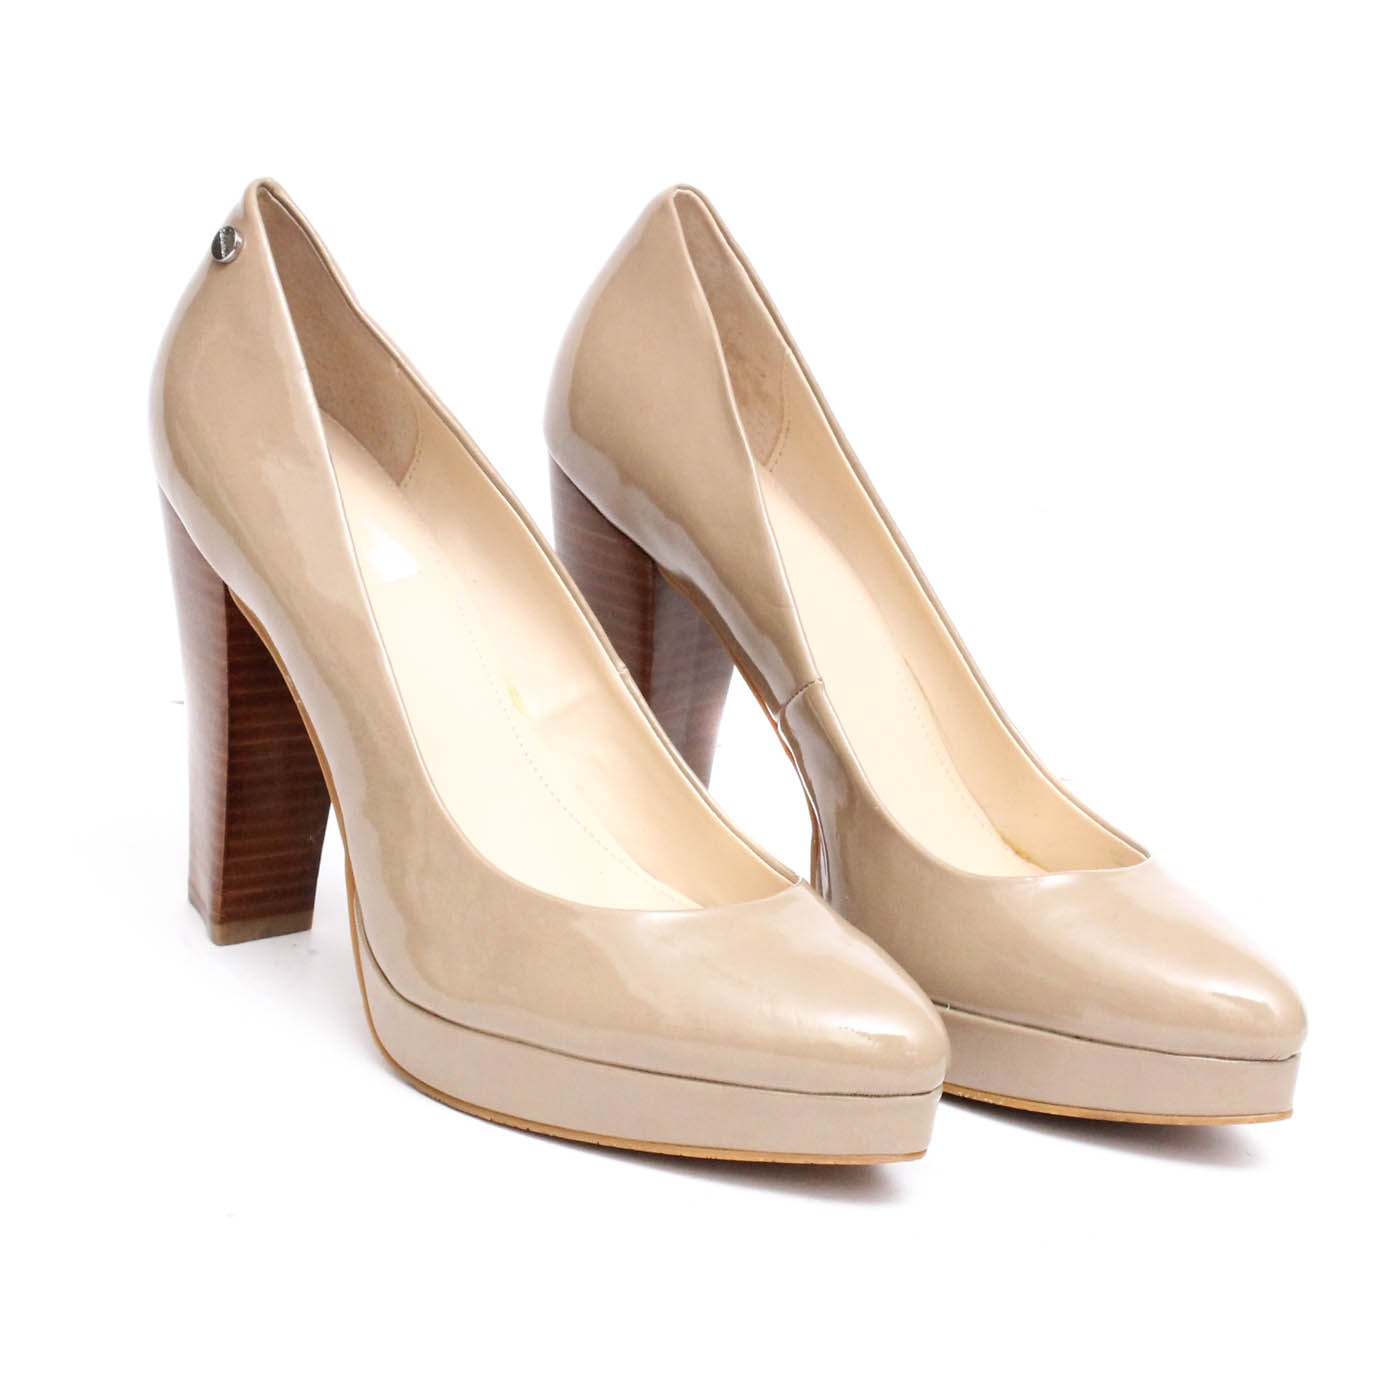 Calvin Klein Emmy Nude Patent Leather High-Heeled Platform Pumps